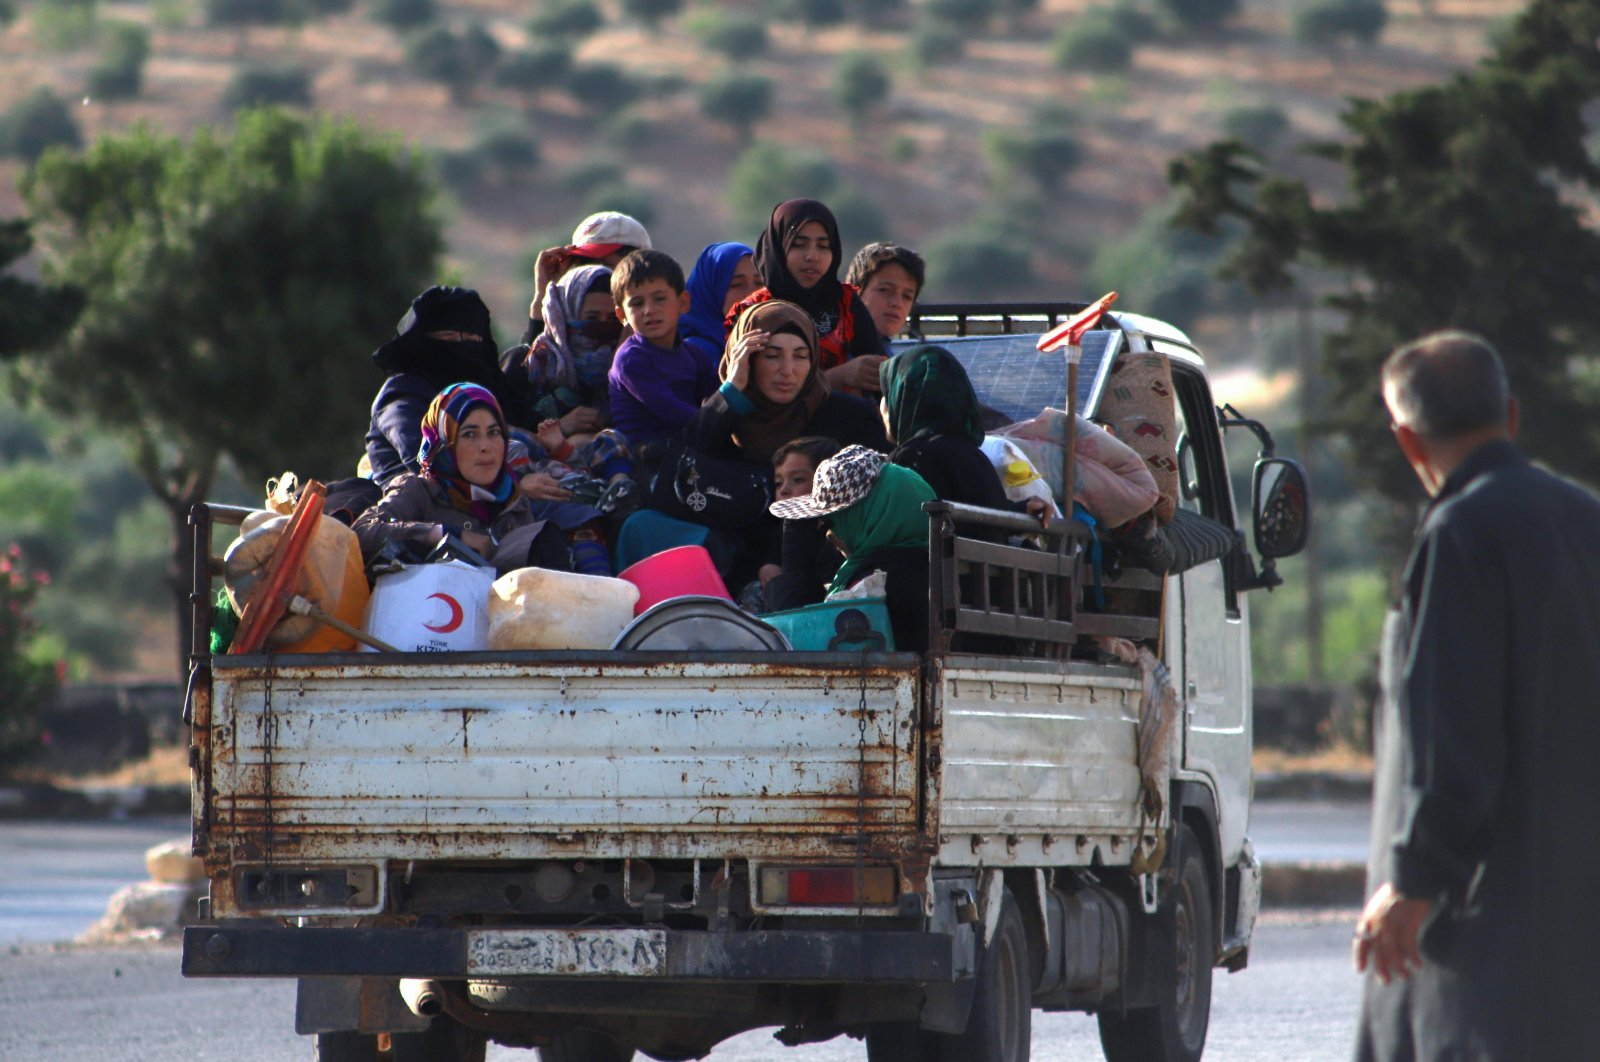 Displaced Syrians sit in the back of a truck loaded with belongings as they flee along the M4 highway, in Ariha in the opposition-held northwestern Syrian province of Idlib, June 8, 2020. (AFP)